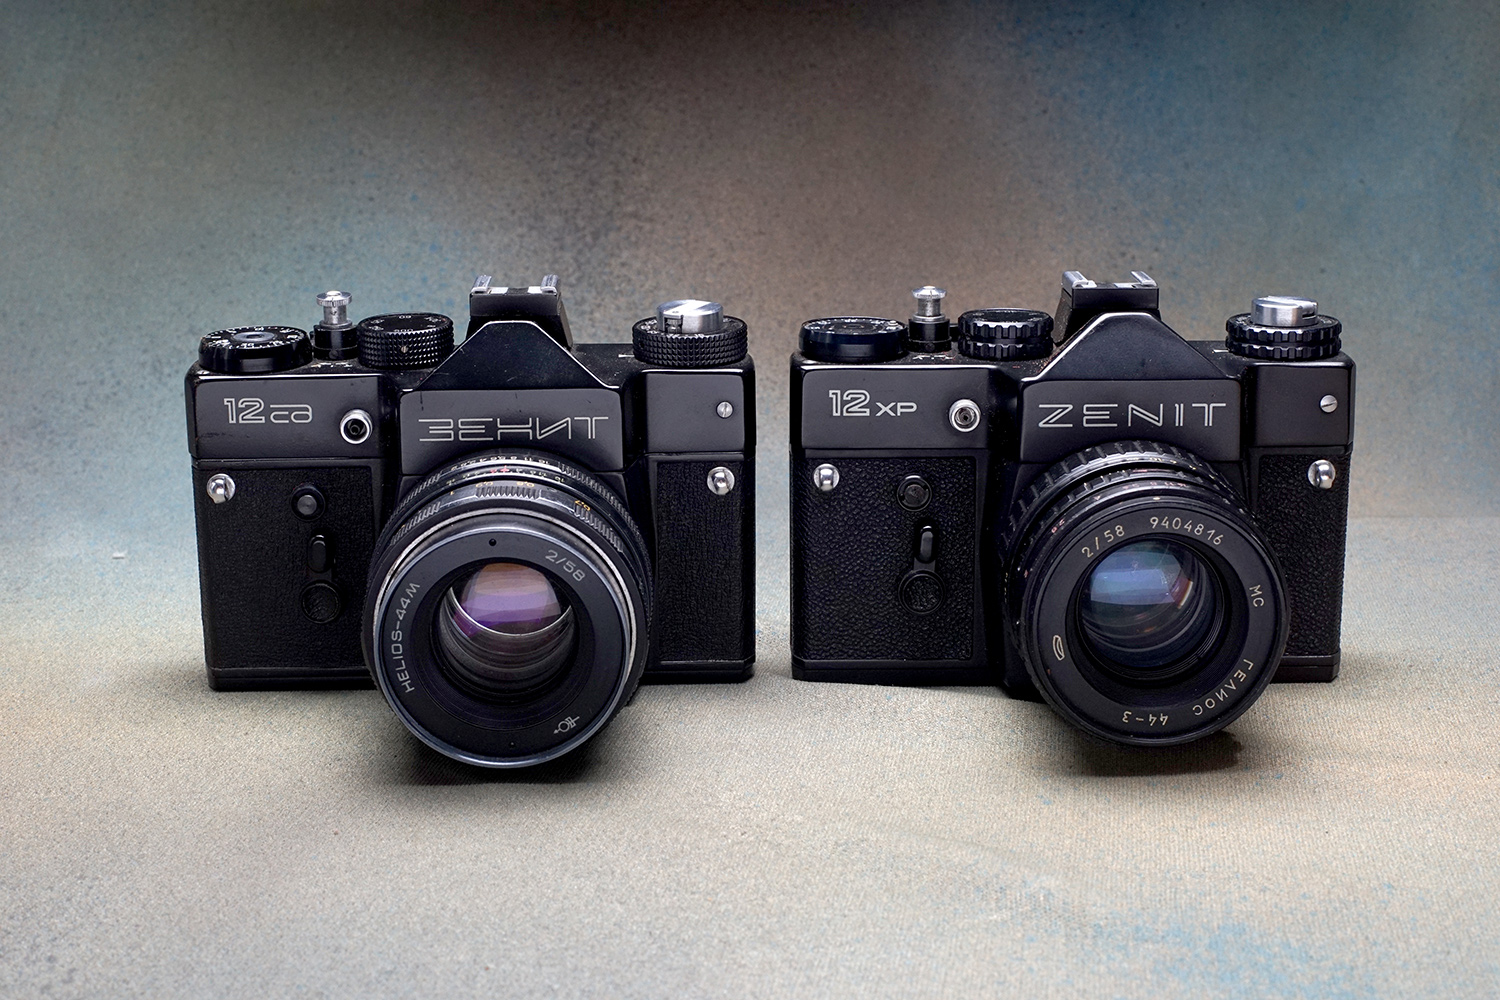 Zenit-12Xp and SC (Pic: Jay Javier)